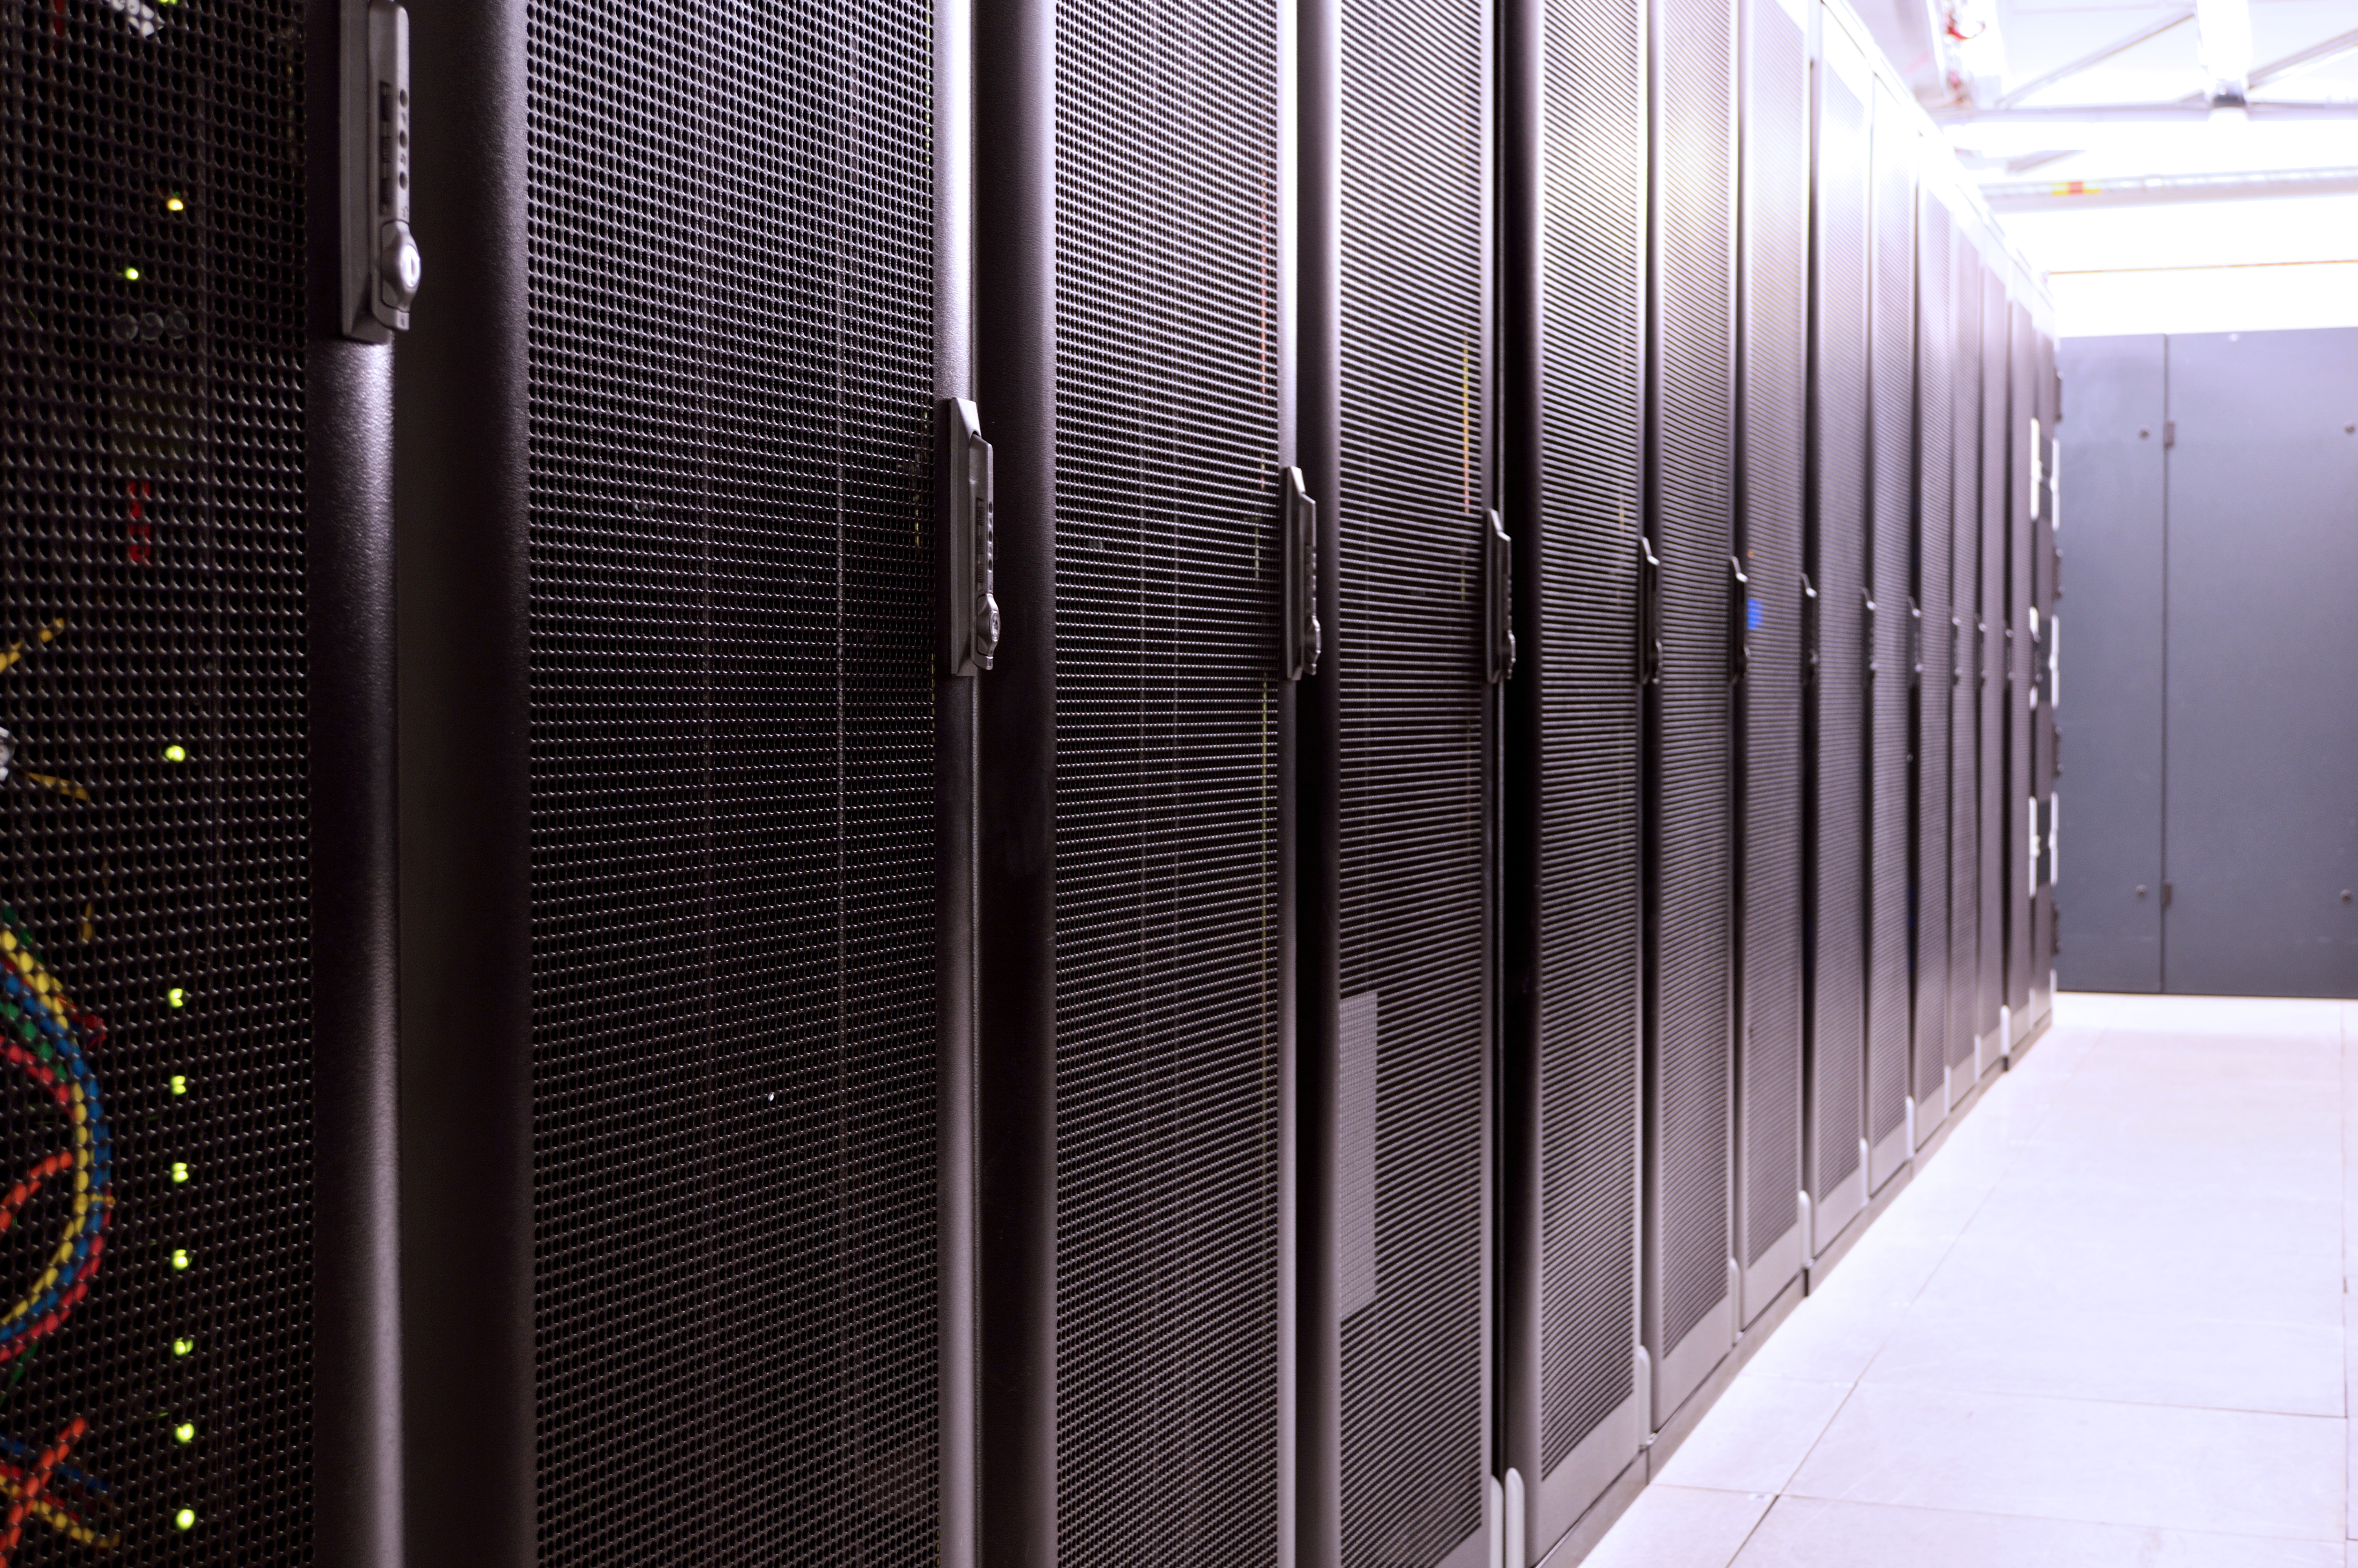 Colocation vs cloud - what does your business need?